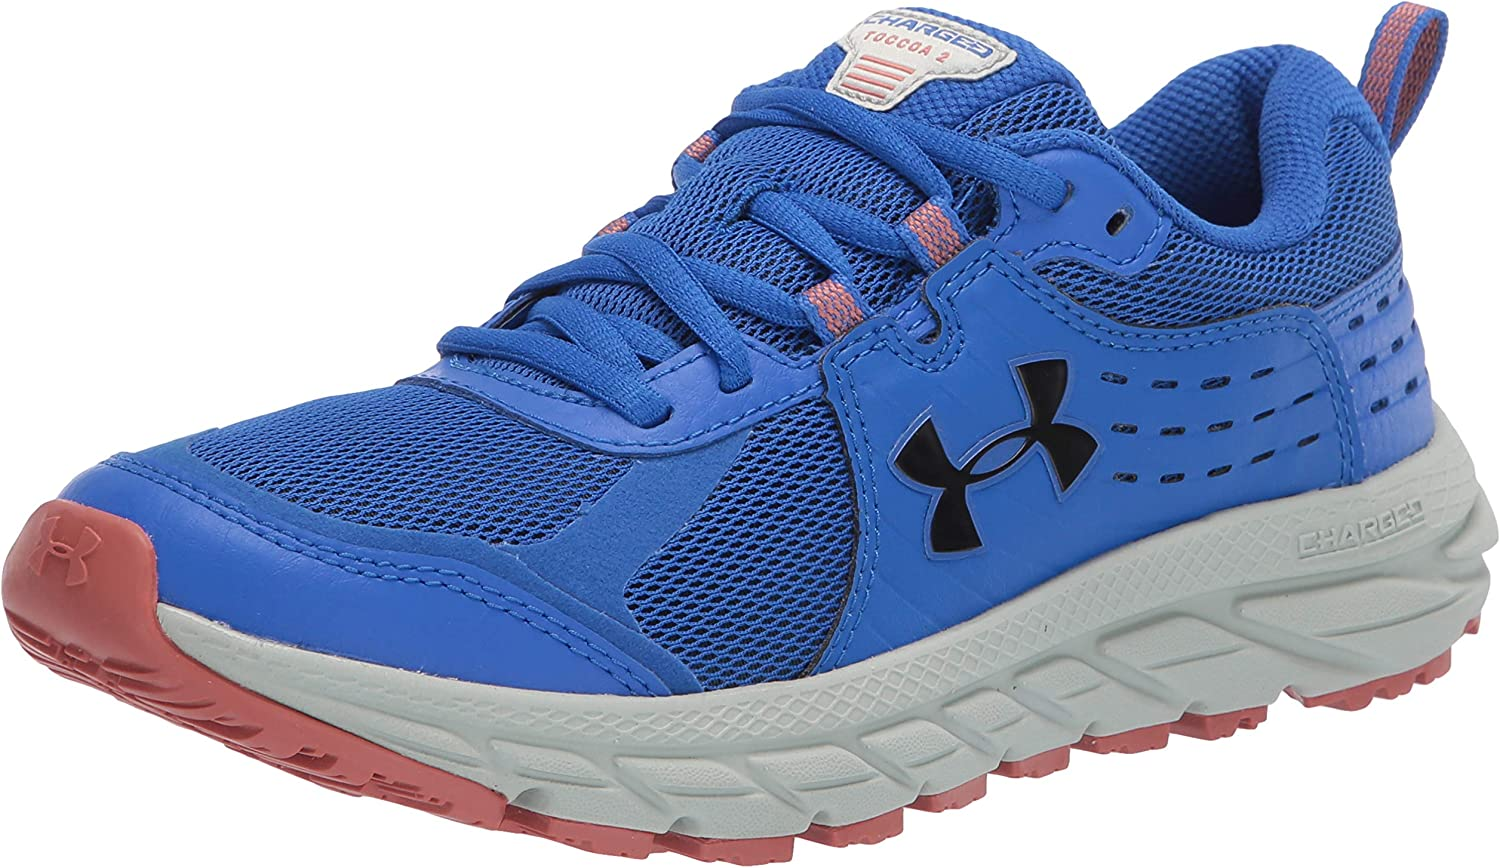 Charged Toccoa 2 Running Shoe